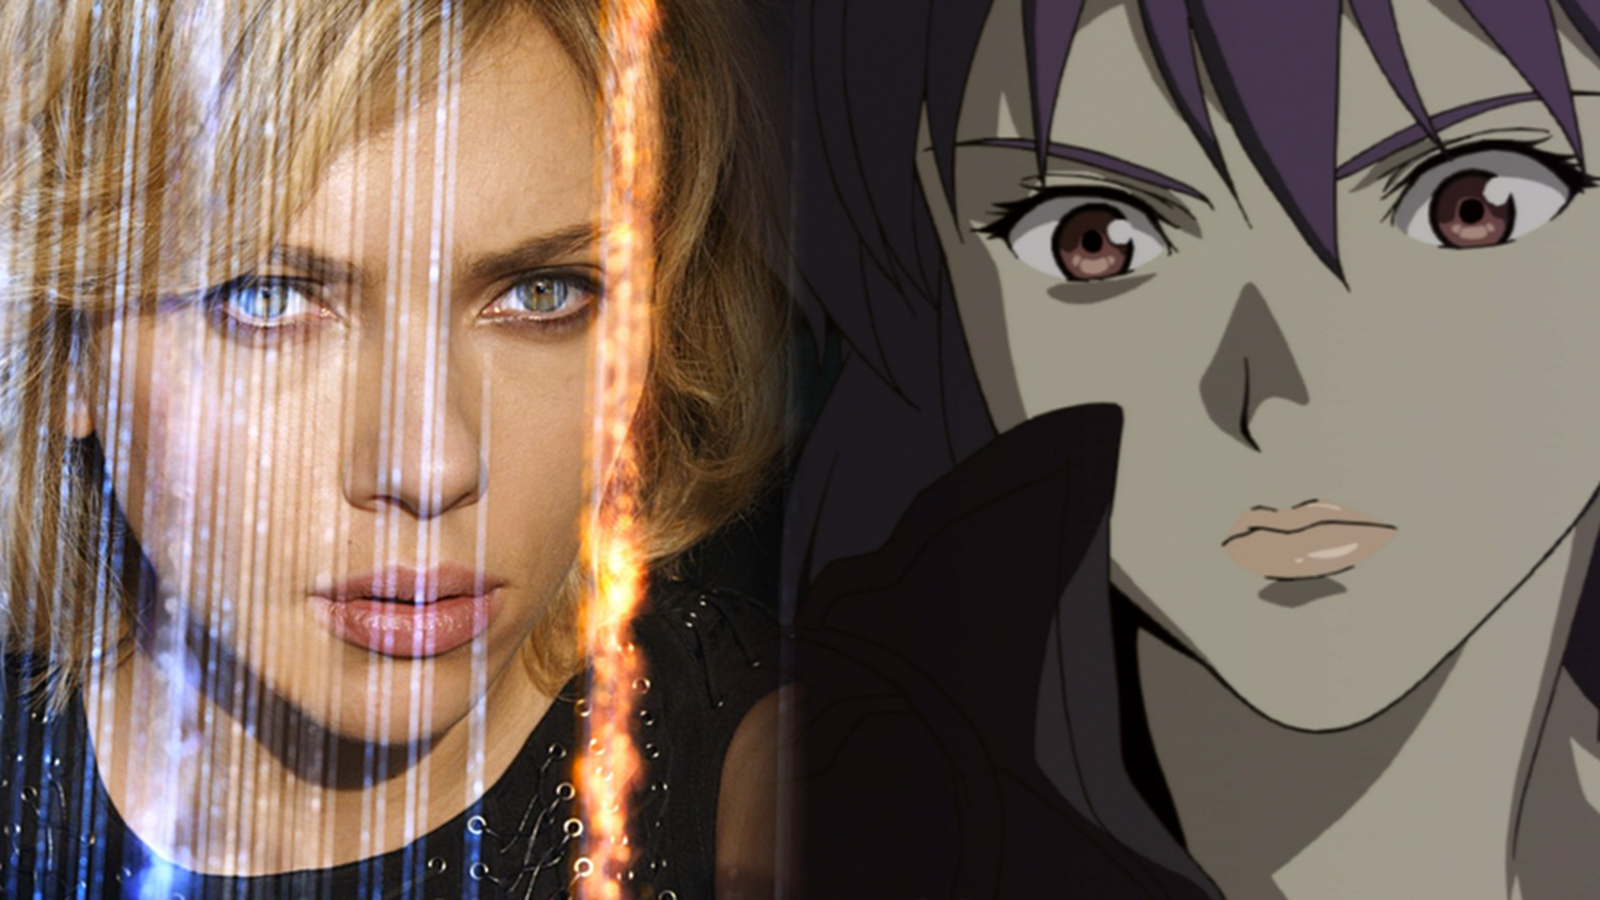 ghost-in-the-shell-movie-vs-anime